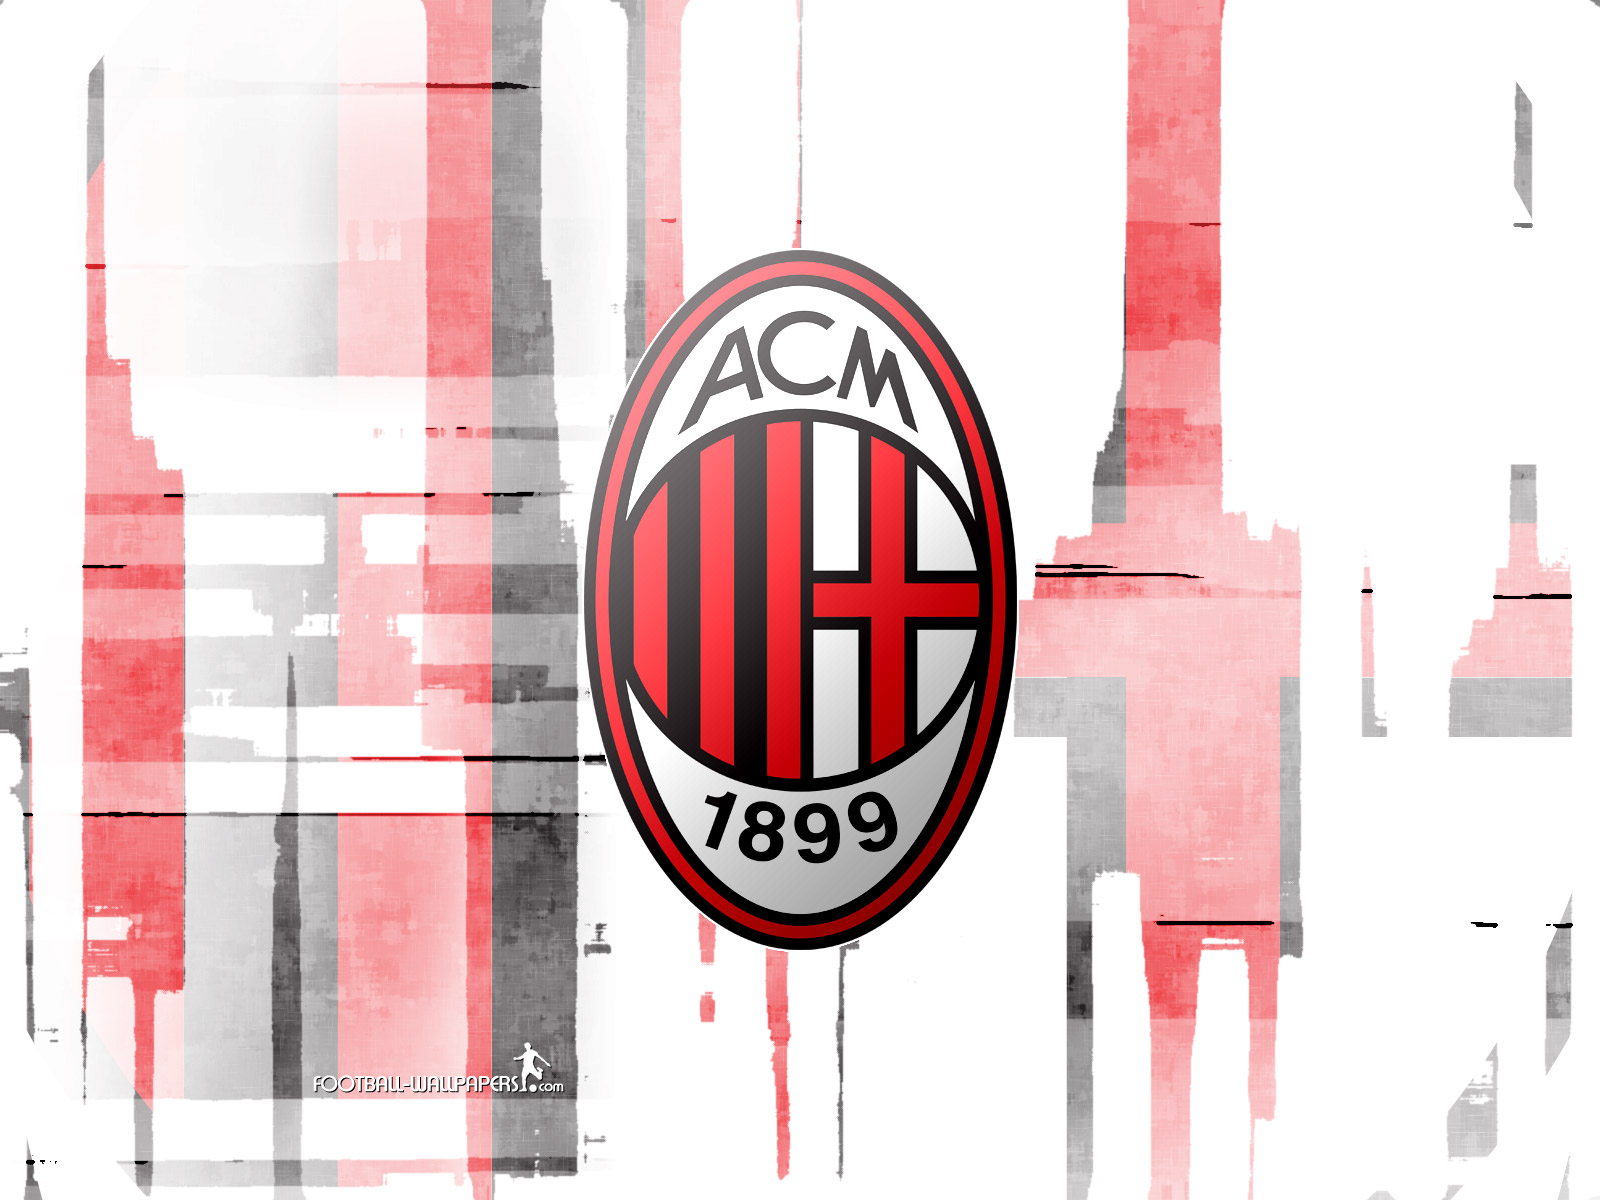 League Calcio Ac Milan Logo Wallpaper